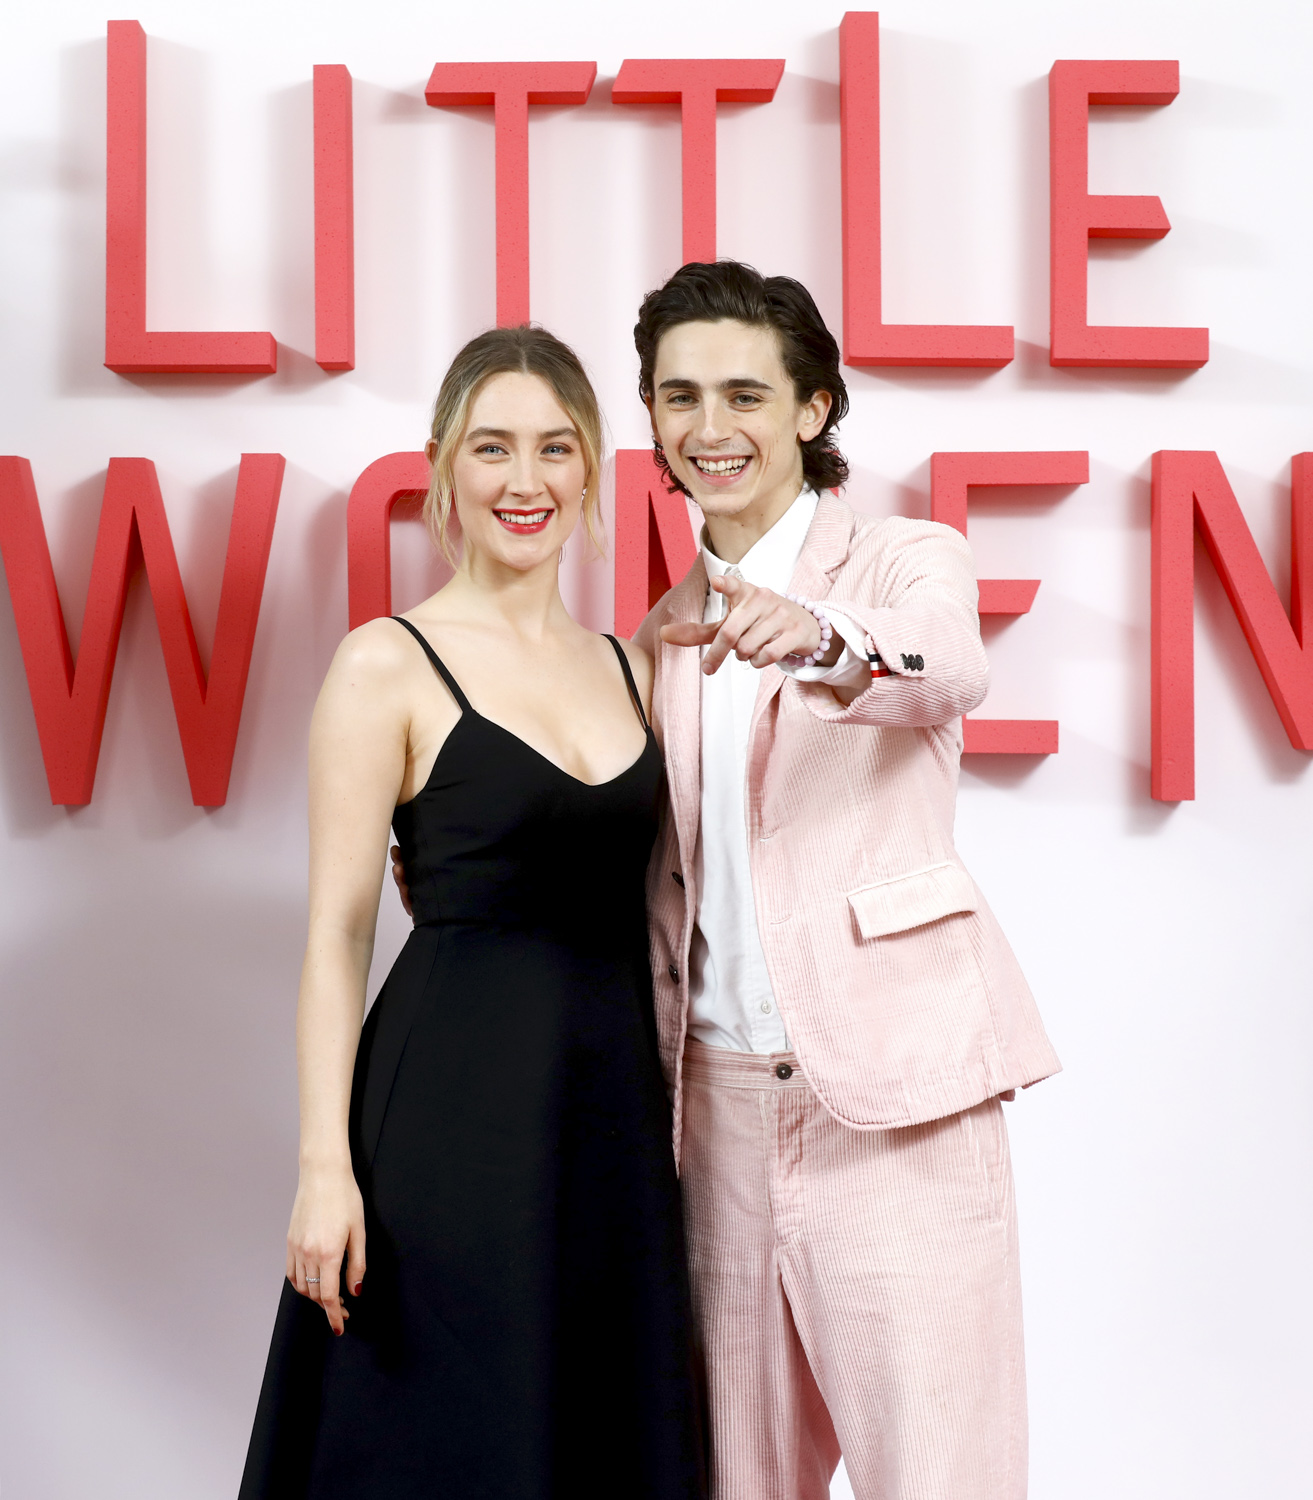 Saoirse Ronan and Timothee Chalamet